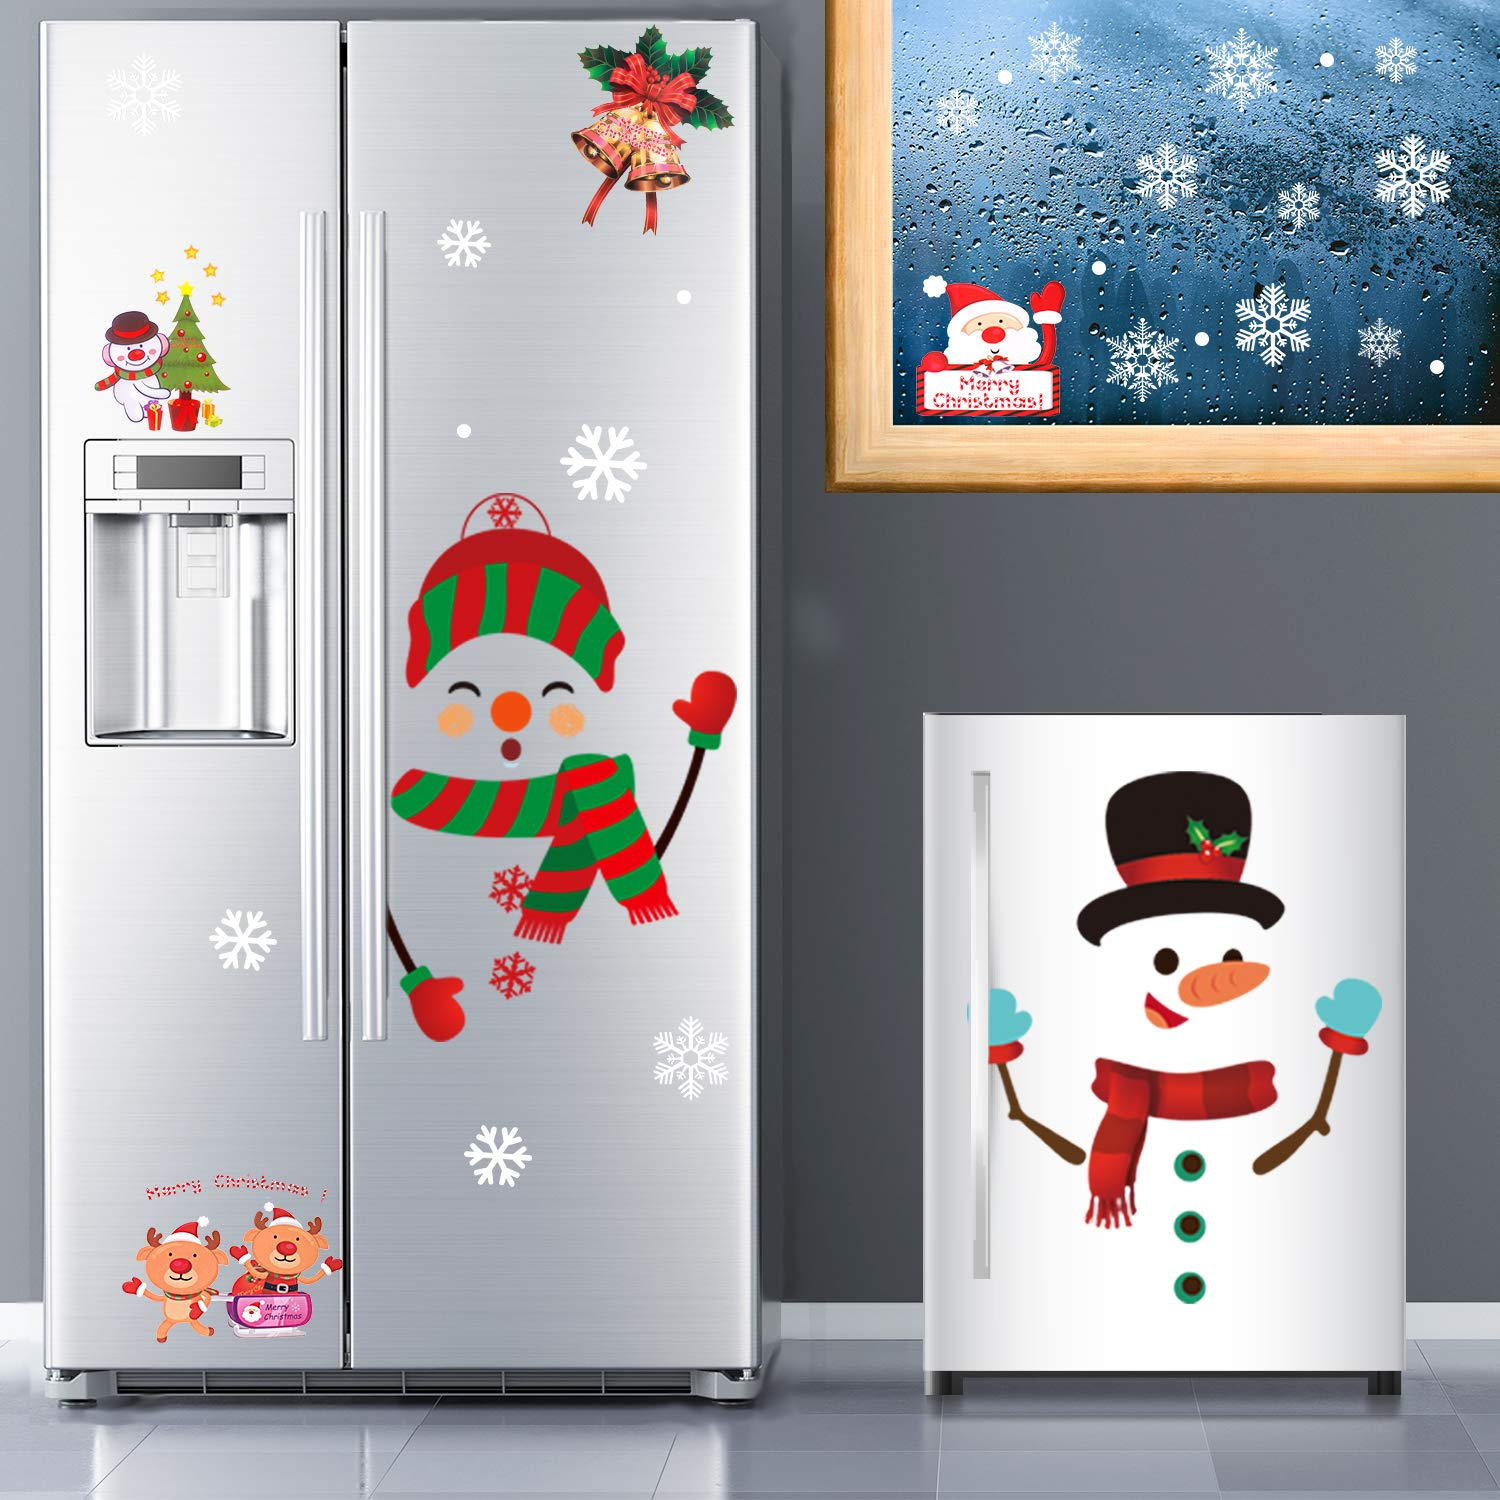 Whaline 64Pcs Christmas Stickers for Refrigerator,Window and Wall,Snowman Snowflakes Christmas Window Clings Decal Stickers,Holiday Xmas Decorations for Fridge, Door, Garage, Office Cabinets(4 Sheets)